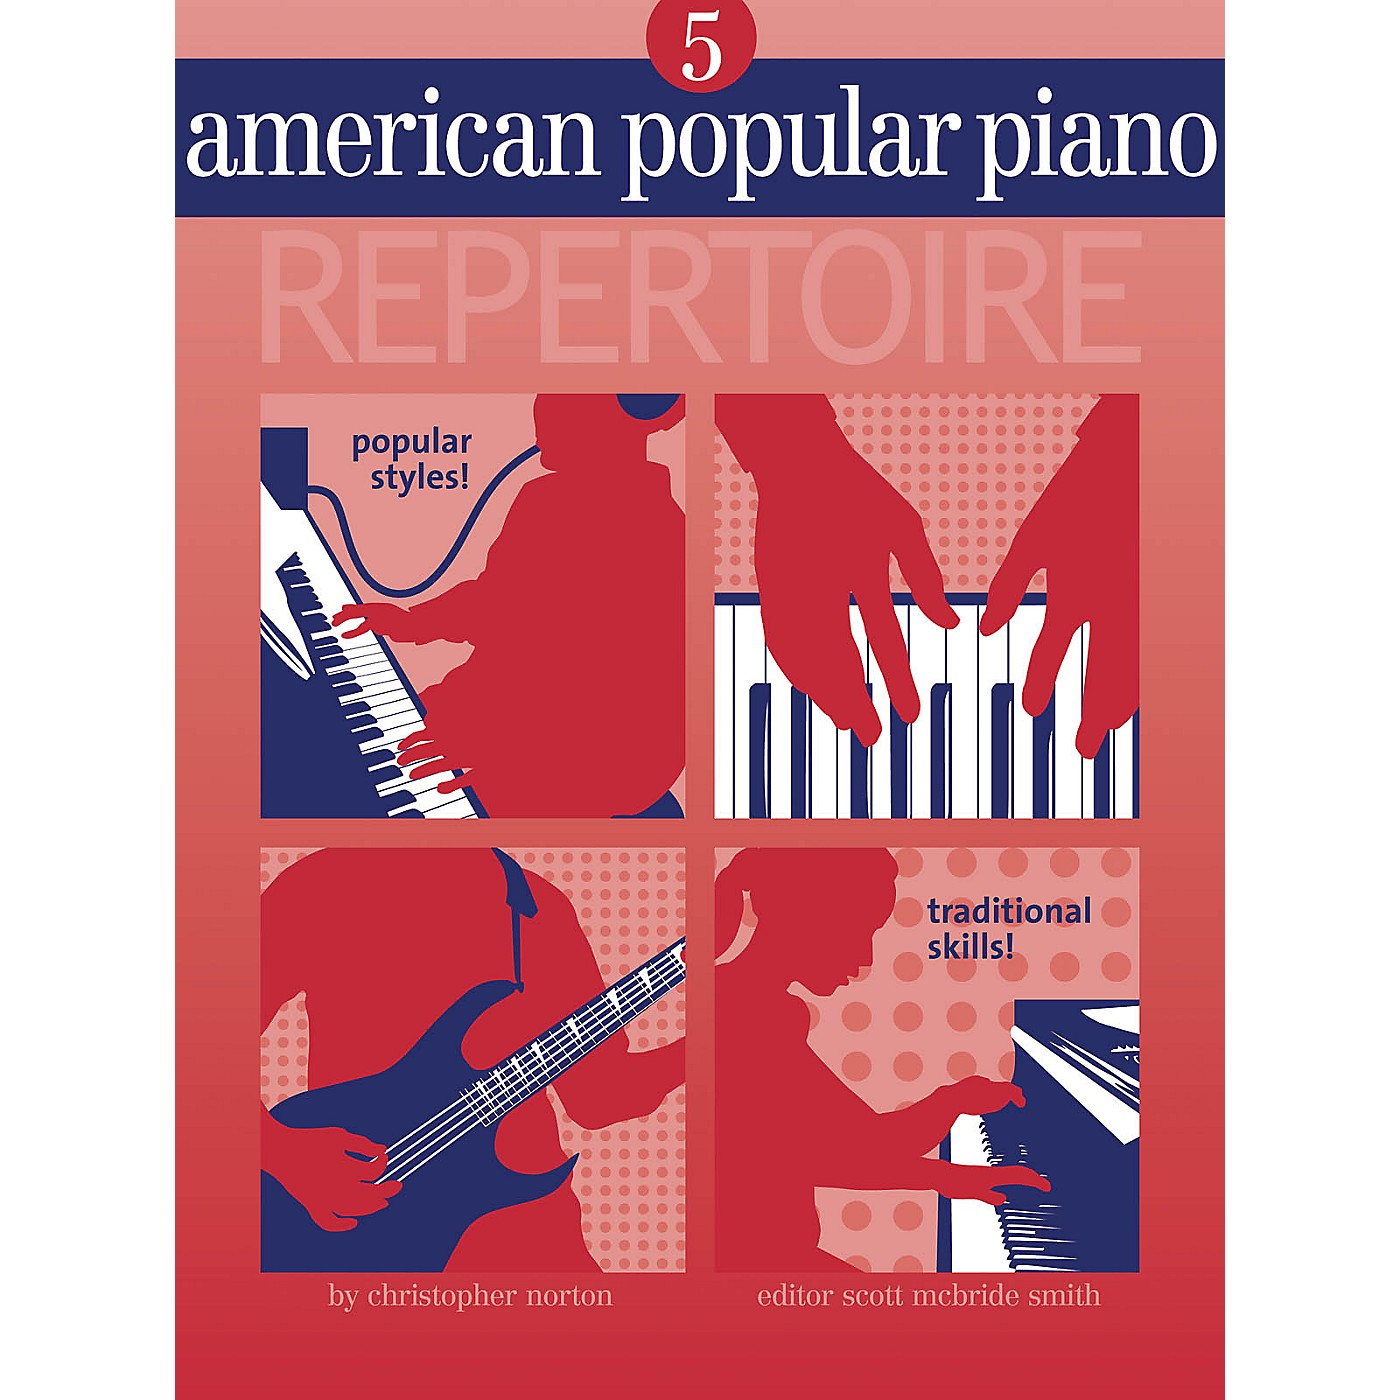 Novus Via American Popular Piano - Repertoire Novus Via Music Group Series Softcover with CD by Christopher Norton thumbnail